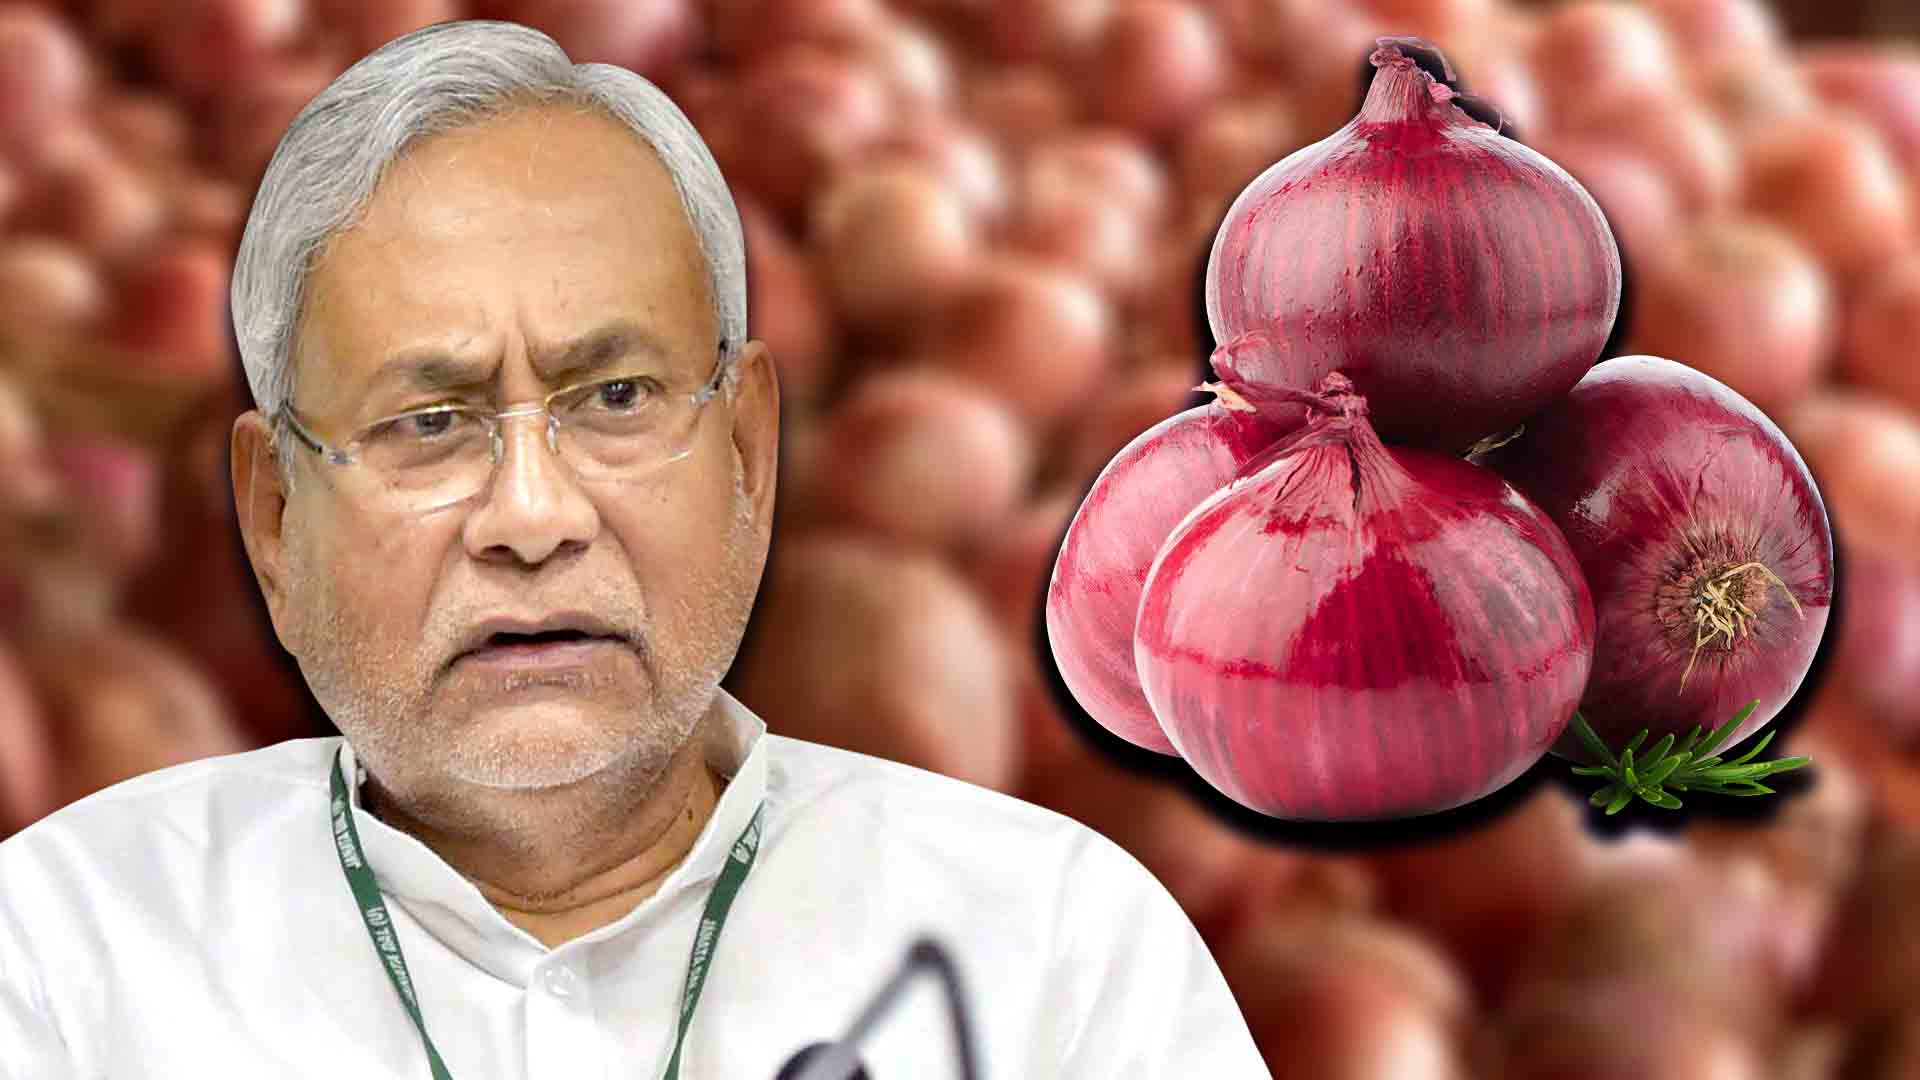 Forget Flowers; Onions Are the New Trend to Welcome the Chief Minister….!!